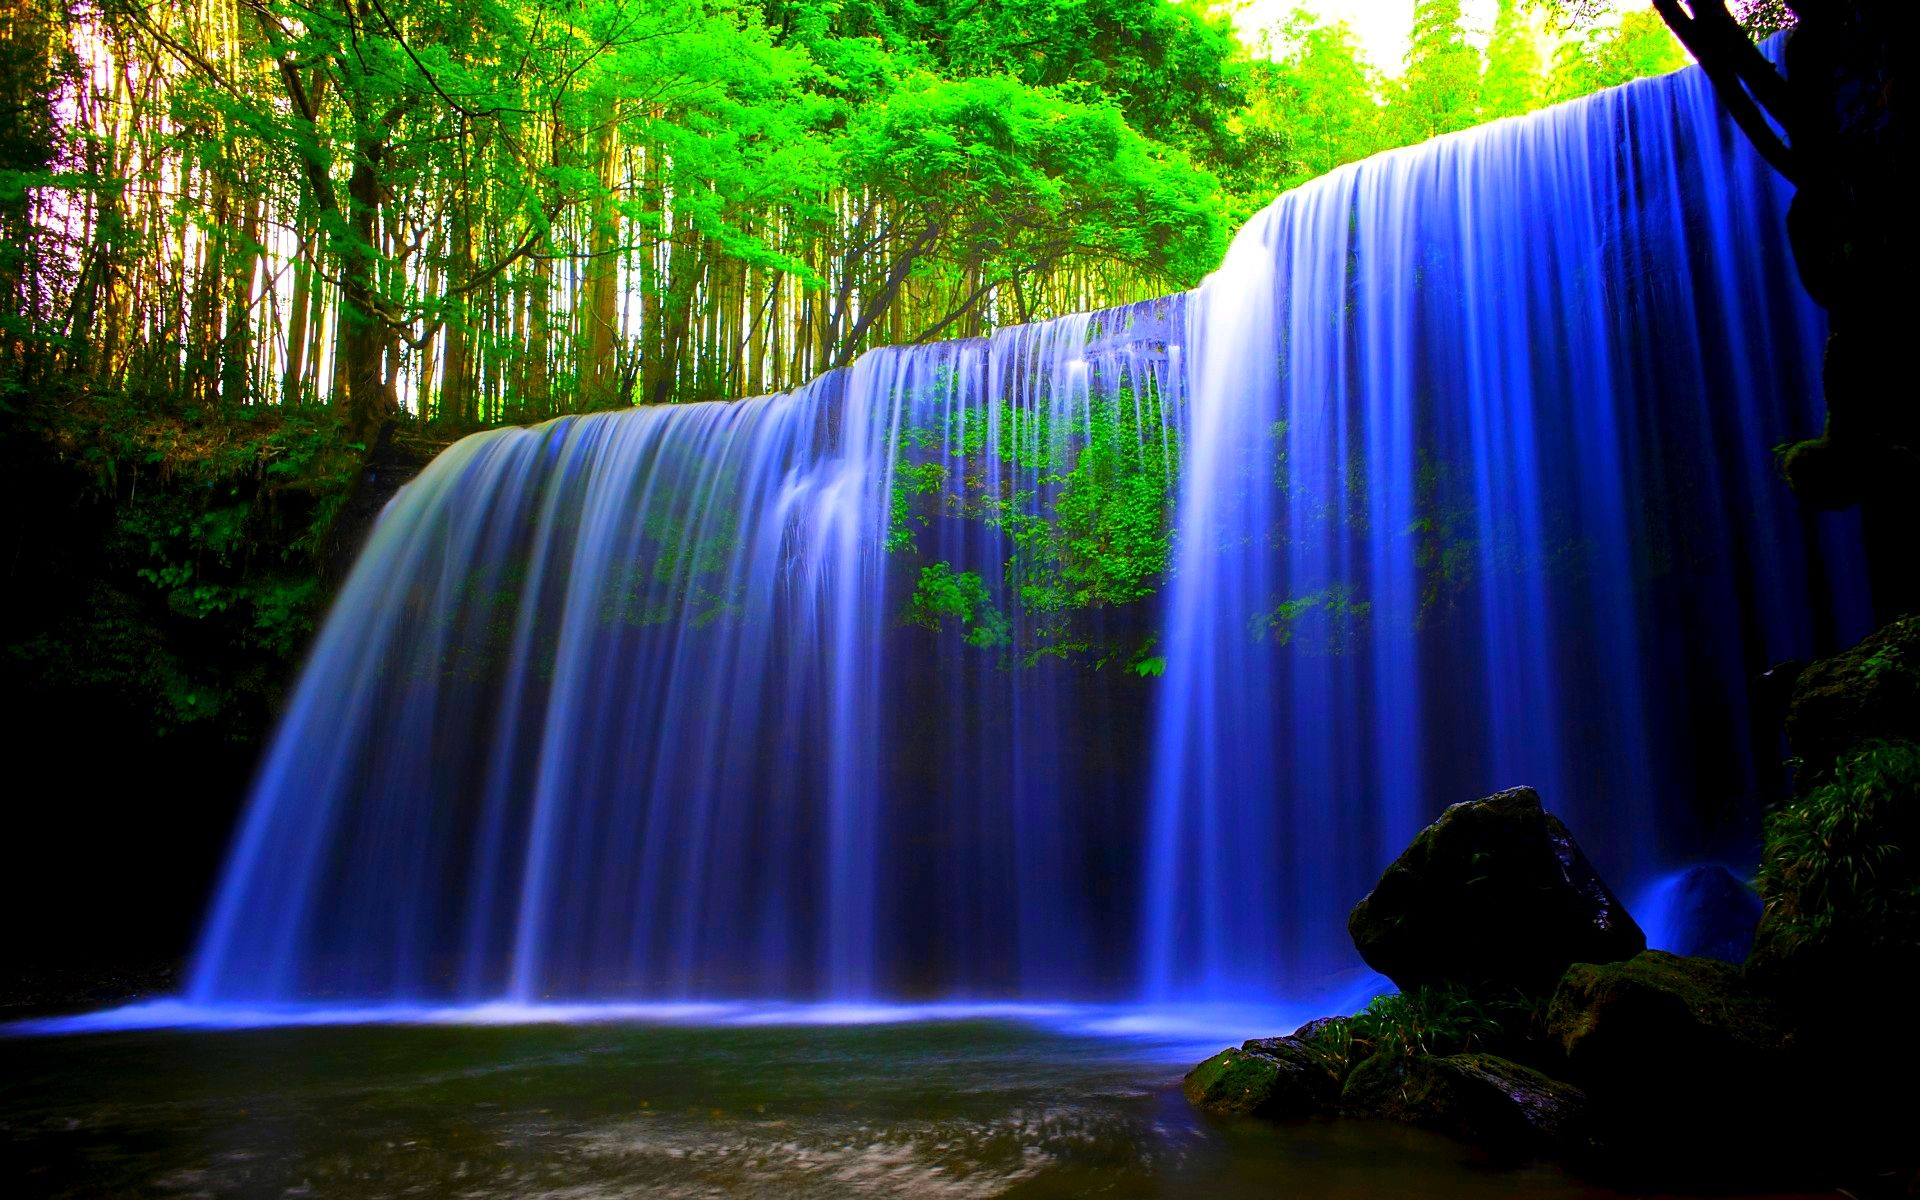 Forest Waterfalls Desktop Background Wallpapers Hd Free 597177 Waterfall Wallpaper Water Live Wallpaper Moving Wallpapers